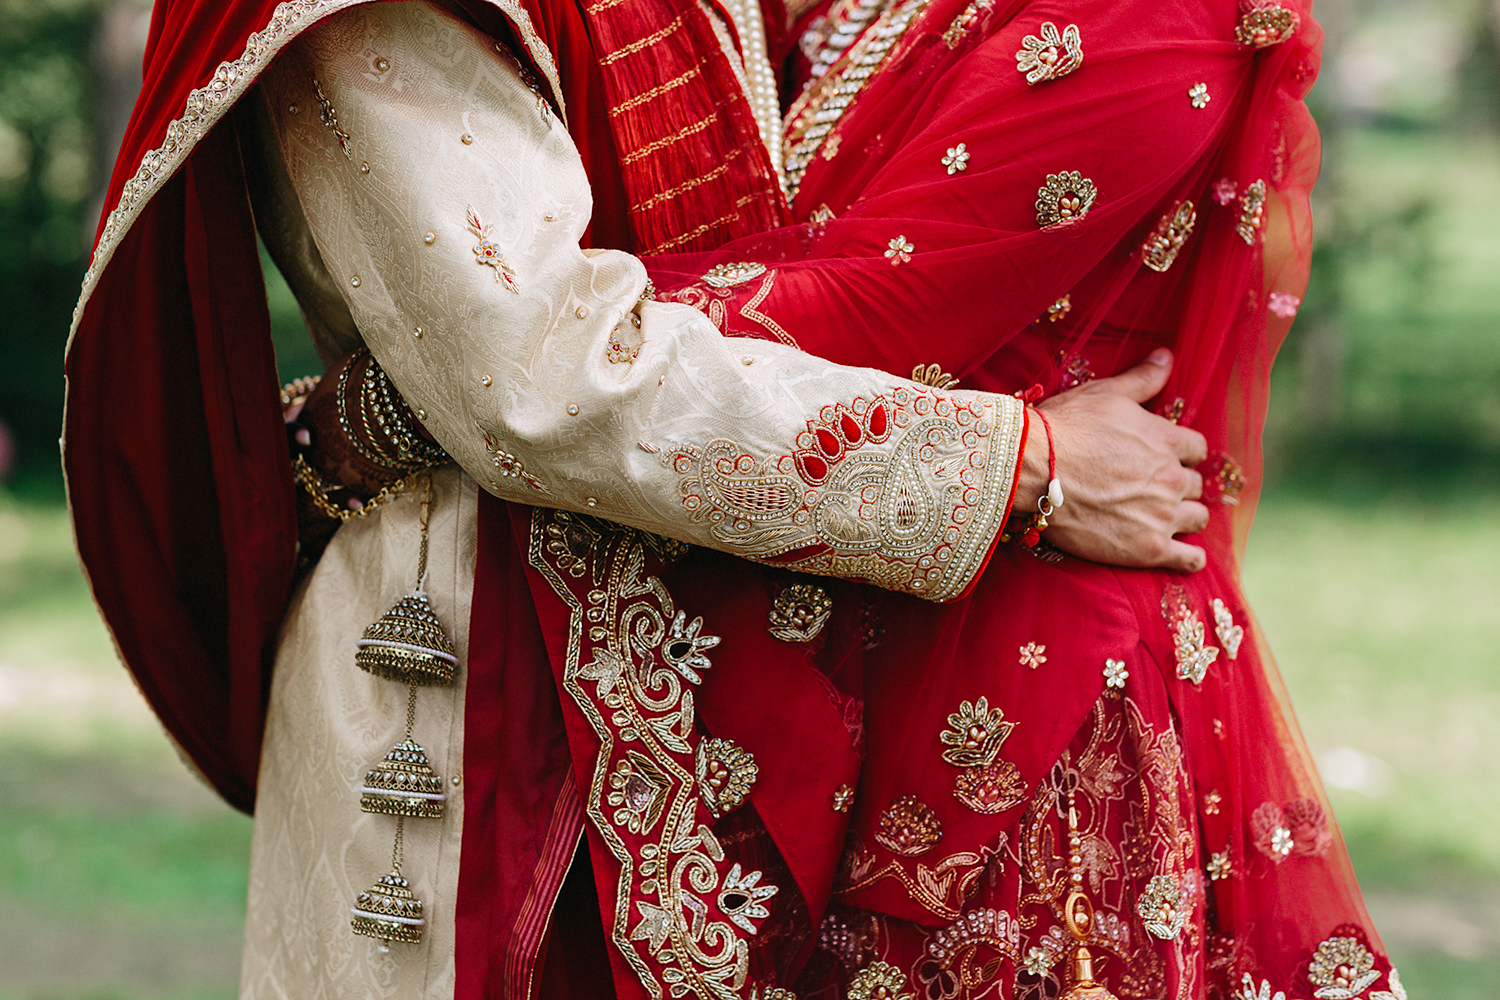 Toronto's-Best-Film-Wedding-Photographers-Multicultural-wedding-specialty-ontario-port-perry-candid-documentary-film-analog-photography-120-35mm-film-portraits-of-sikh-bride-and-groom-cinematic-laughing-together-hugging-hands.jpg